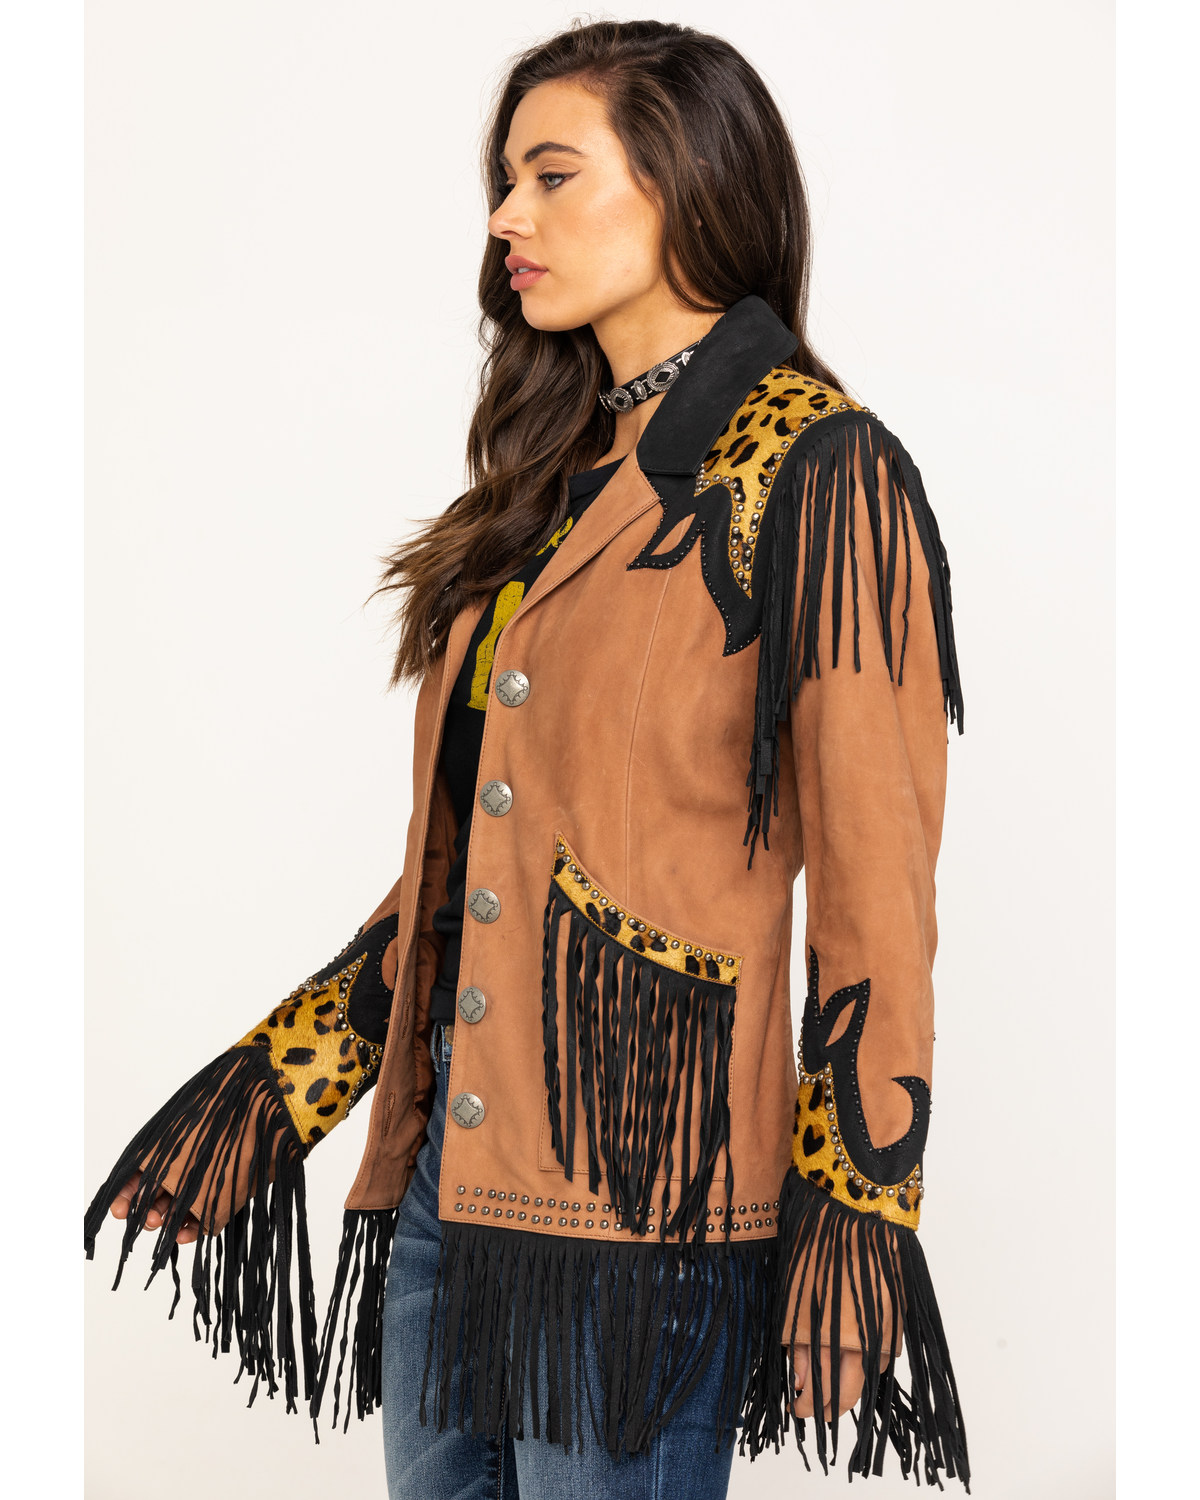 Double D Ranch Women's Saddle Texas Two Step Jacket